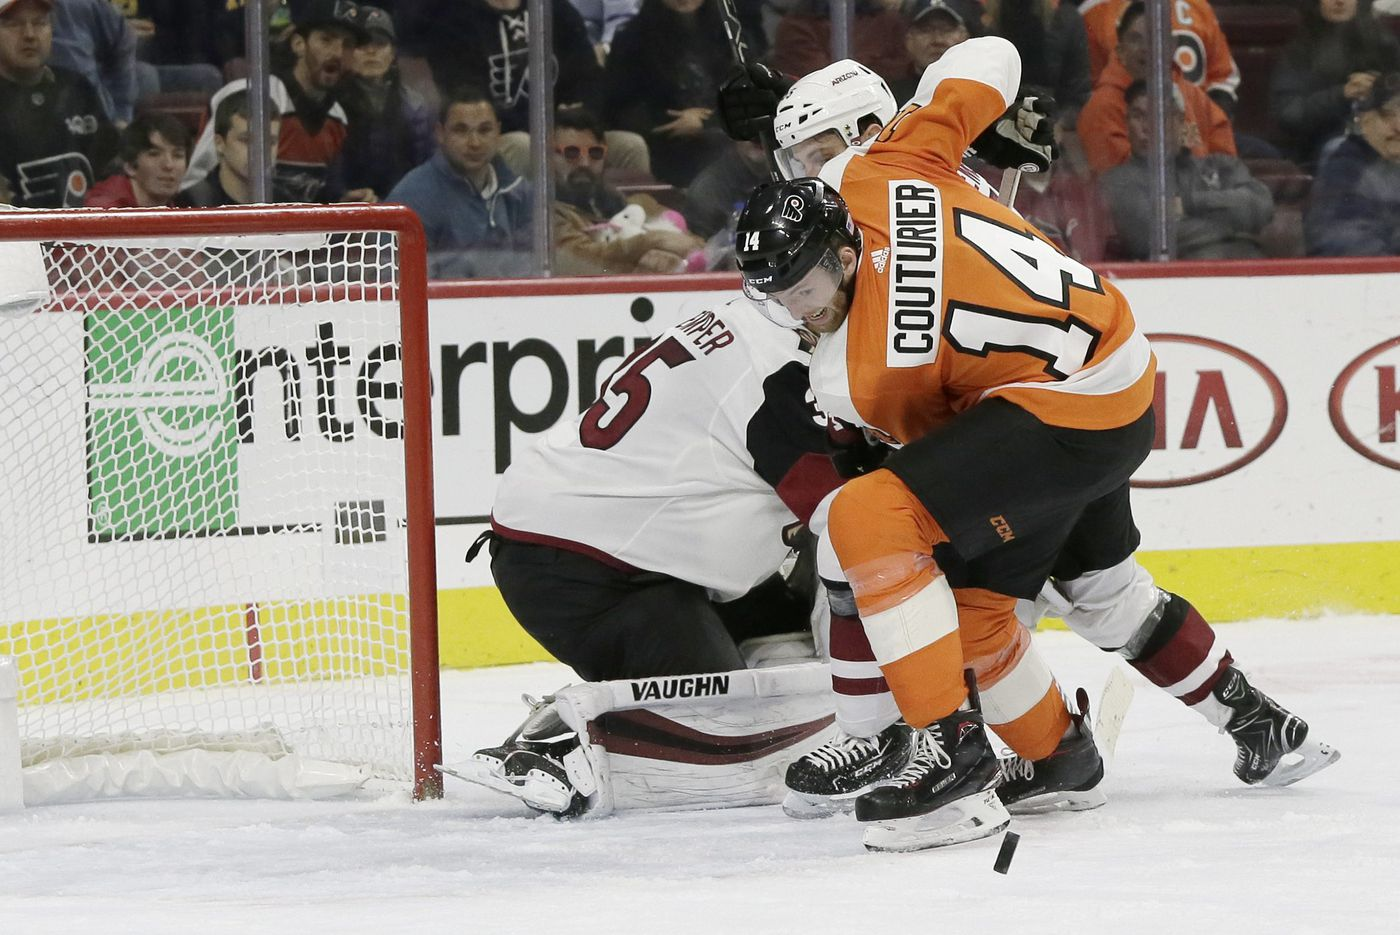 Flyers, fans taking turns tormenting each other | Sam Donnellon